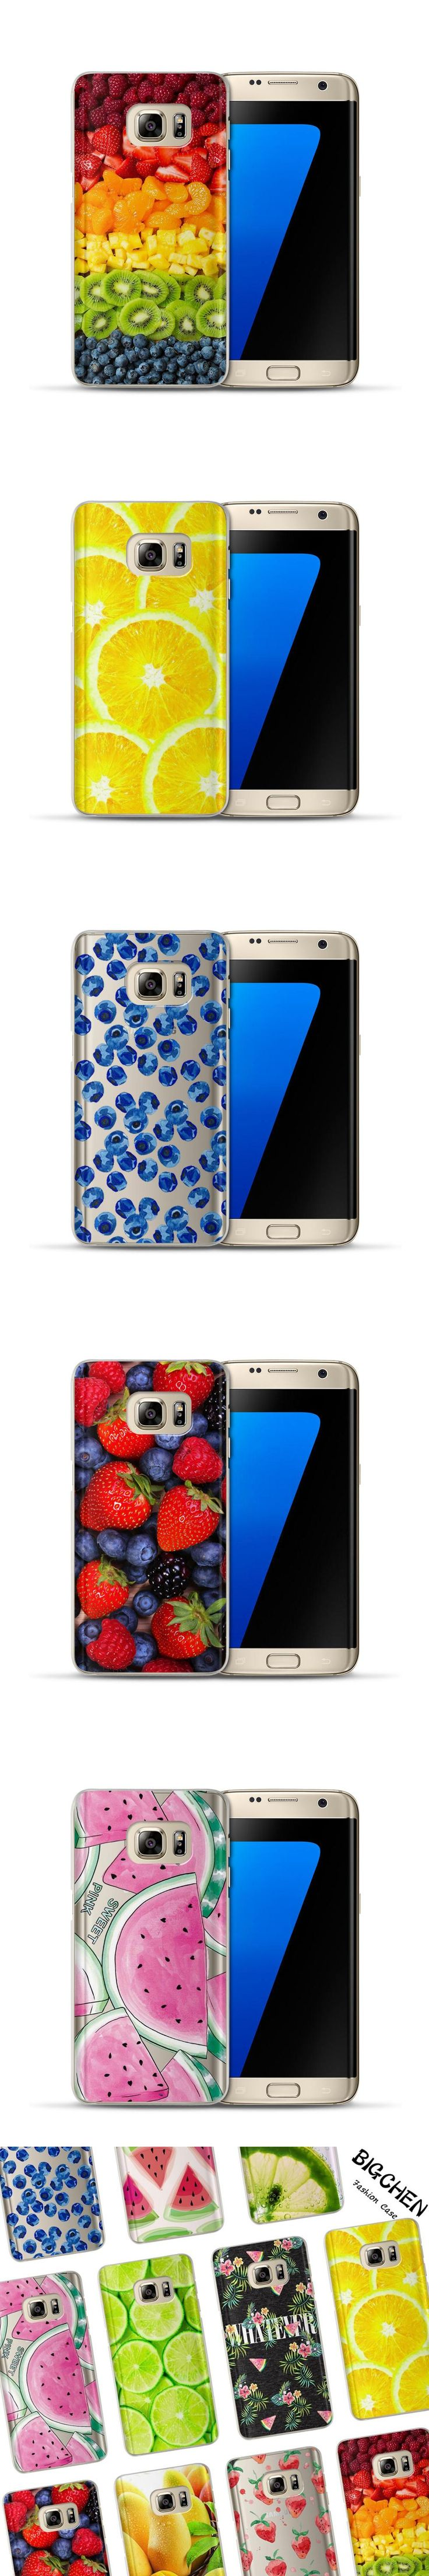 Summer Fruit Case For Coque Samsung Galaxy Grand Prime S3 S4 S5 S6 S7 Edge S8 Plus J2 J3 J5 J7 A3 A5 2017 2016 2015 Phone Cover